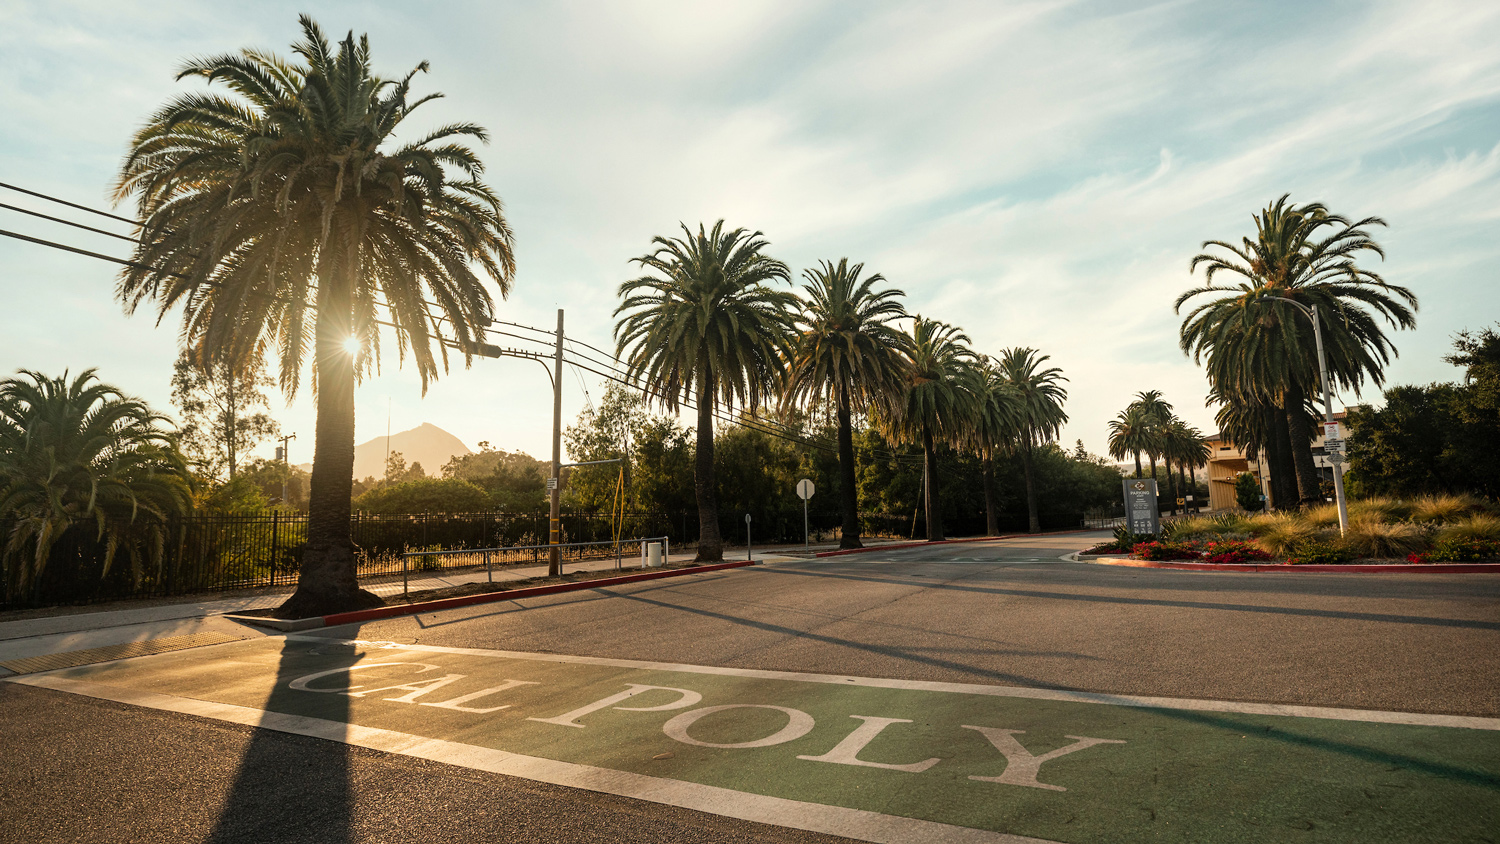 A campus intersection at sunset with the words Cal Poly painted in the crosswalks